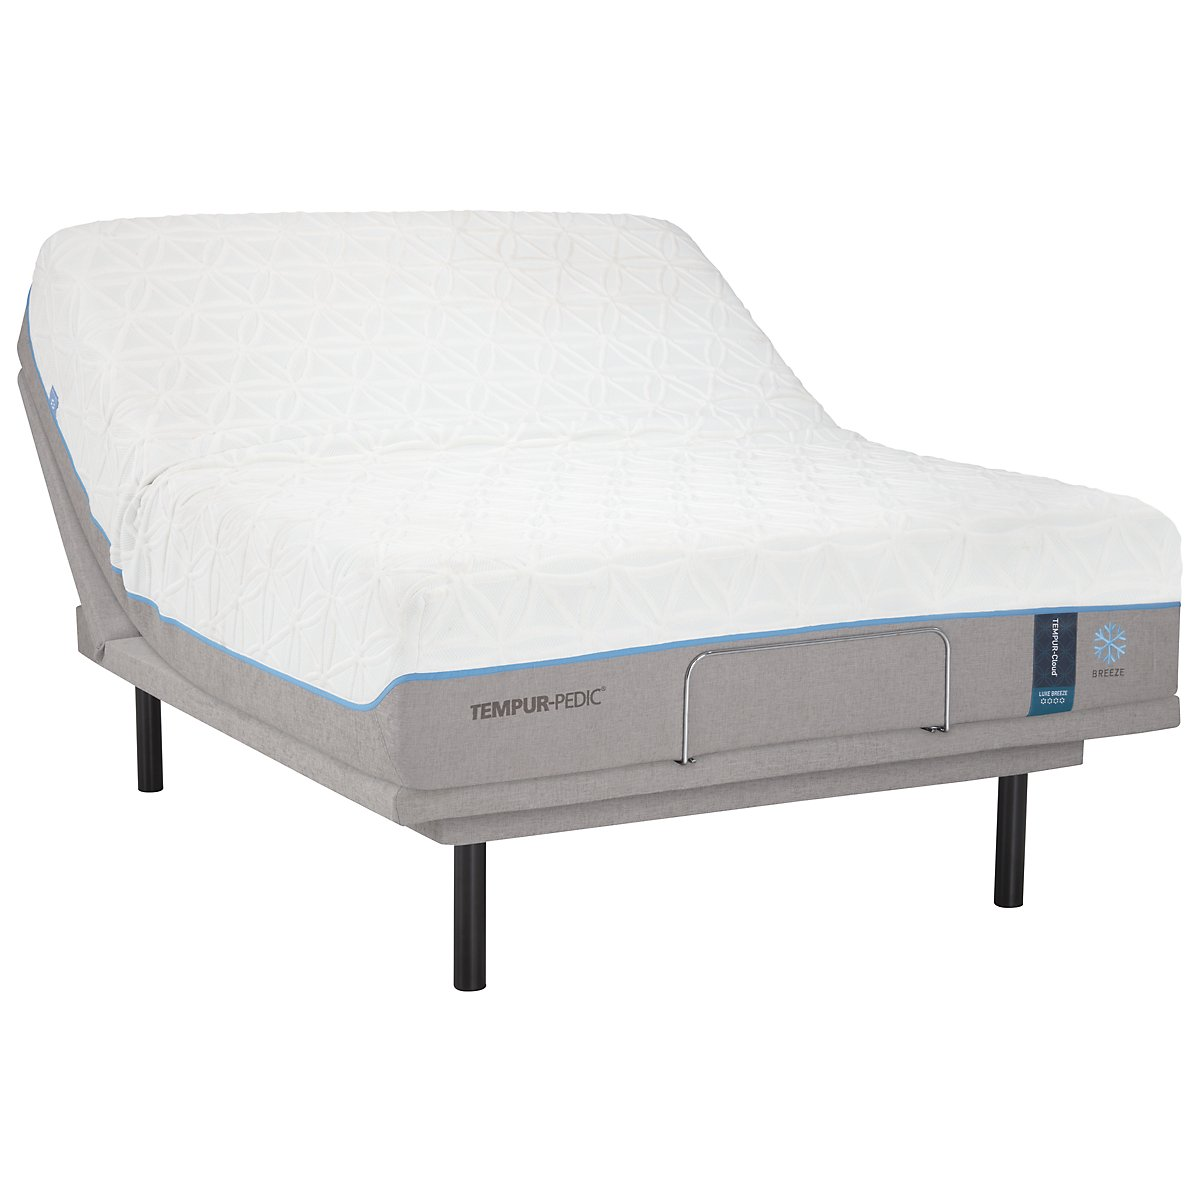 TEMPUR-Cloud® Luxe Breeze 2.0 TEMPUR-Ergo™ Plus Adjustable Mattress Set